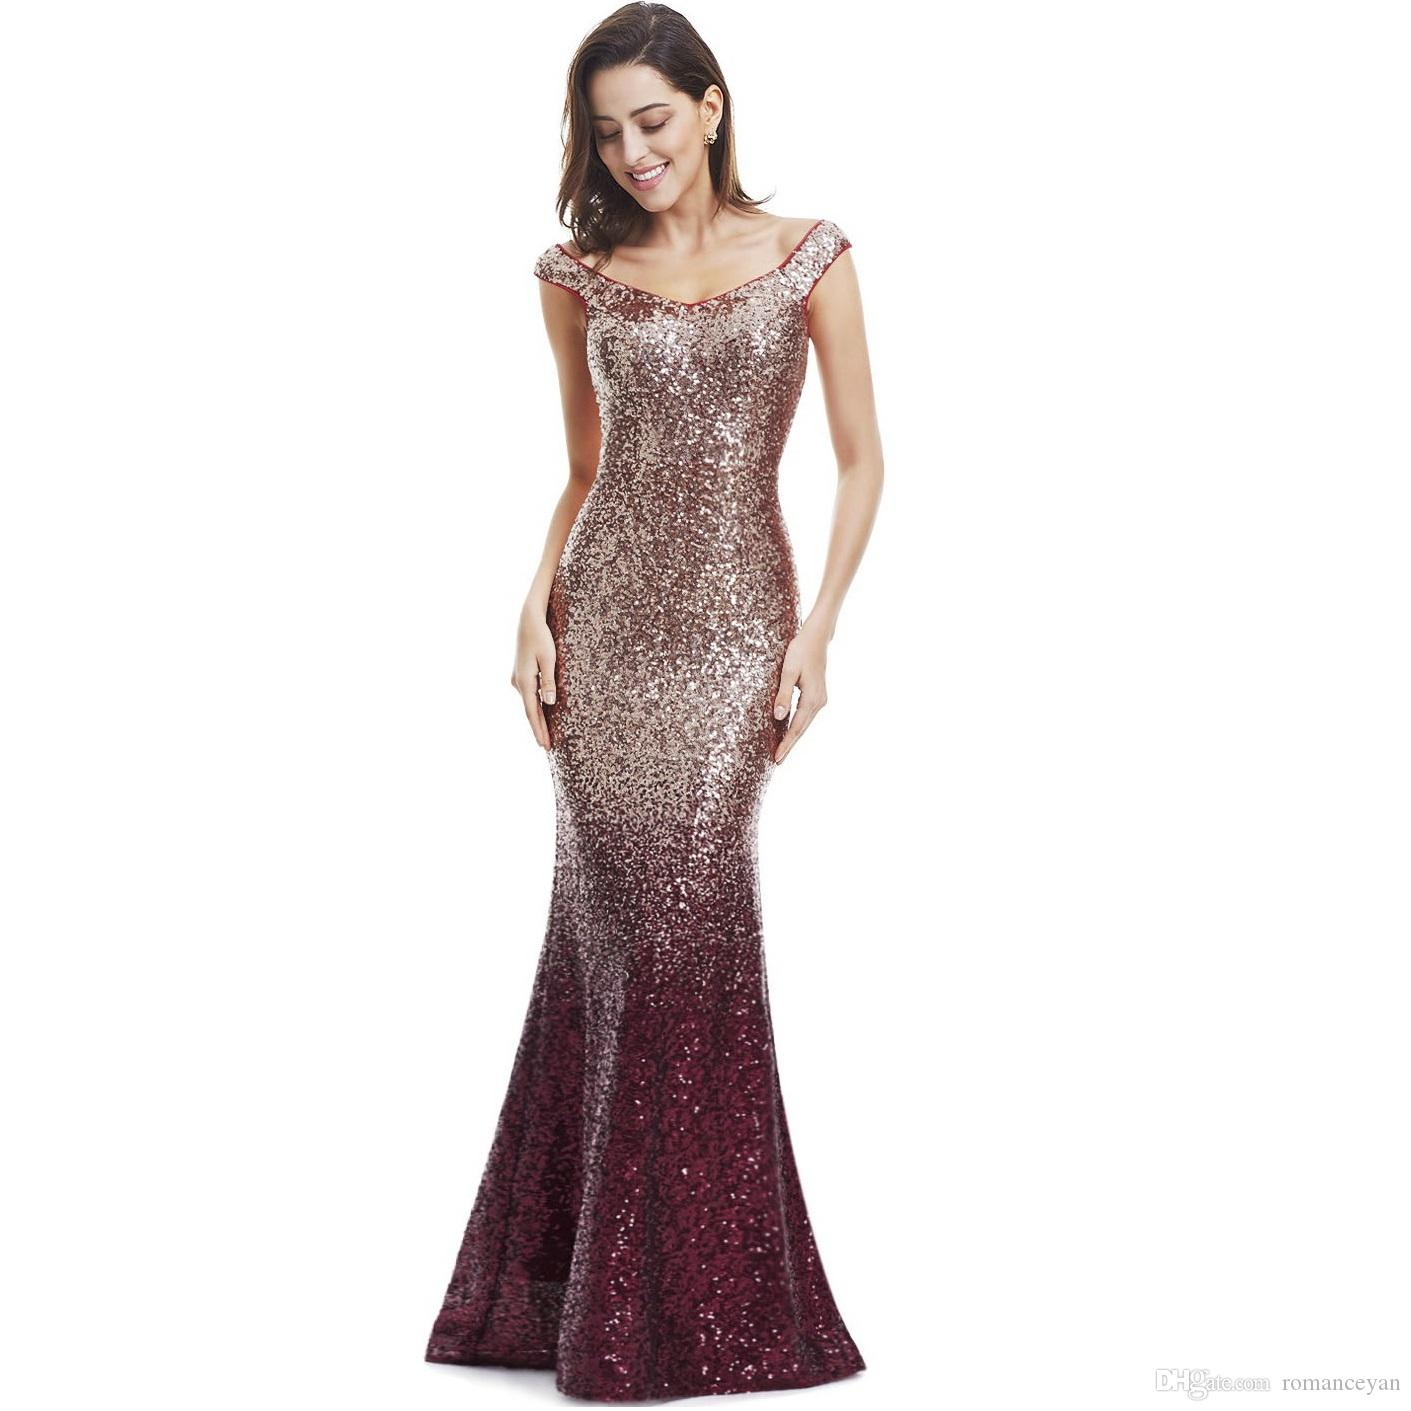 caa60000ac559 Acquista ANTI Womens Paillettes Madre Di Abiti Da Sposa Lungo Scollo A V  Elegante Mermaid Party Dress Abiti Da Sera Partito Formale Gli Ospiti 2019  A  81.4 ...